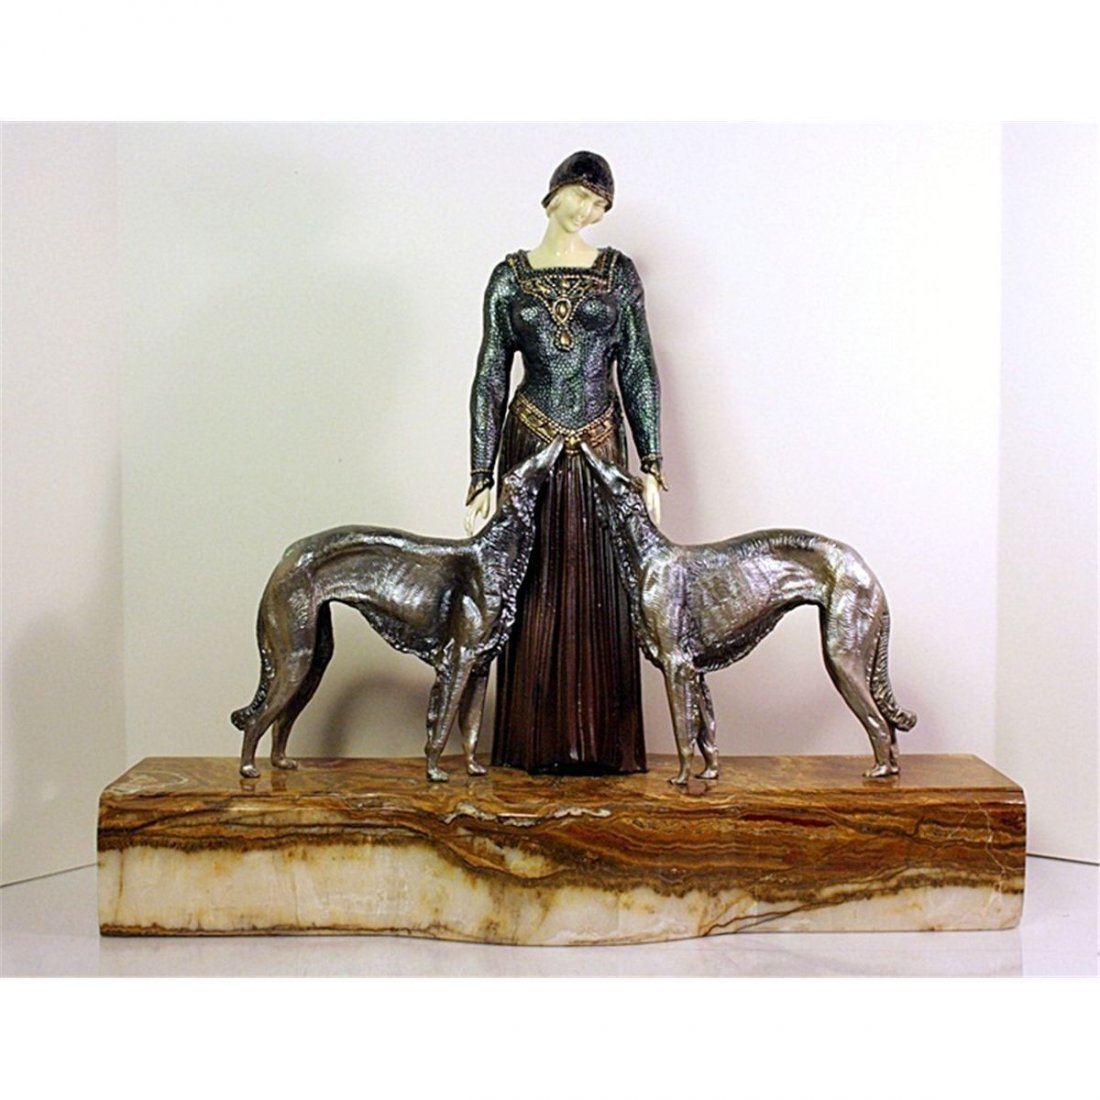 CHIPARUS PAINTED BRONZE-MARBLE-ONYX-IVORY  SCULPTURE